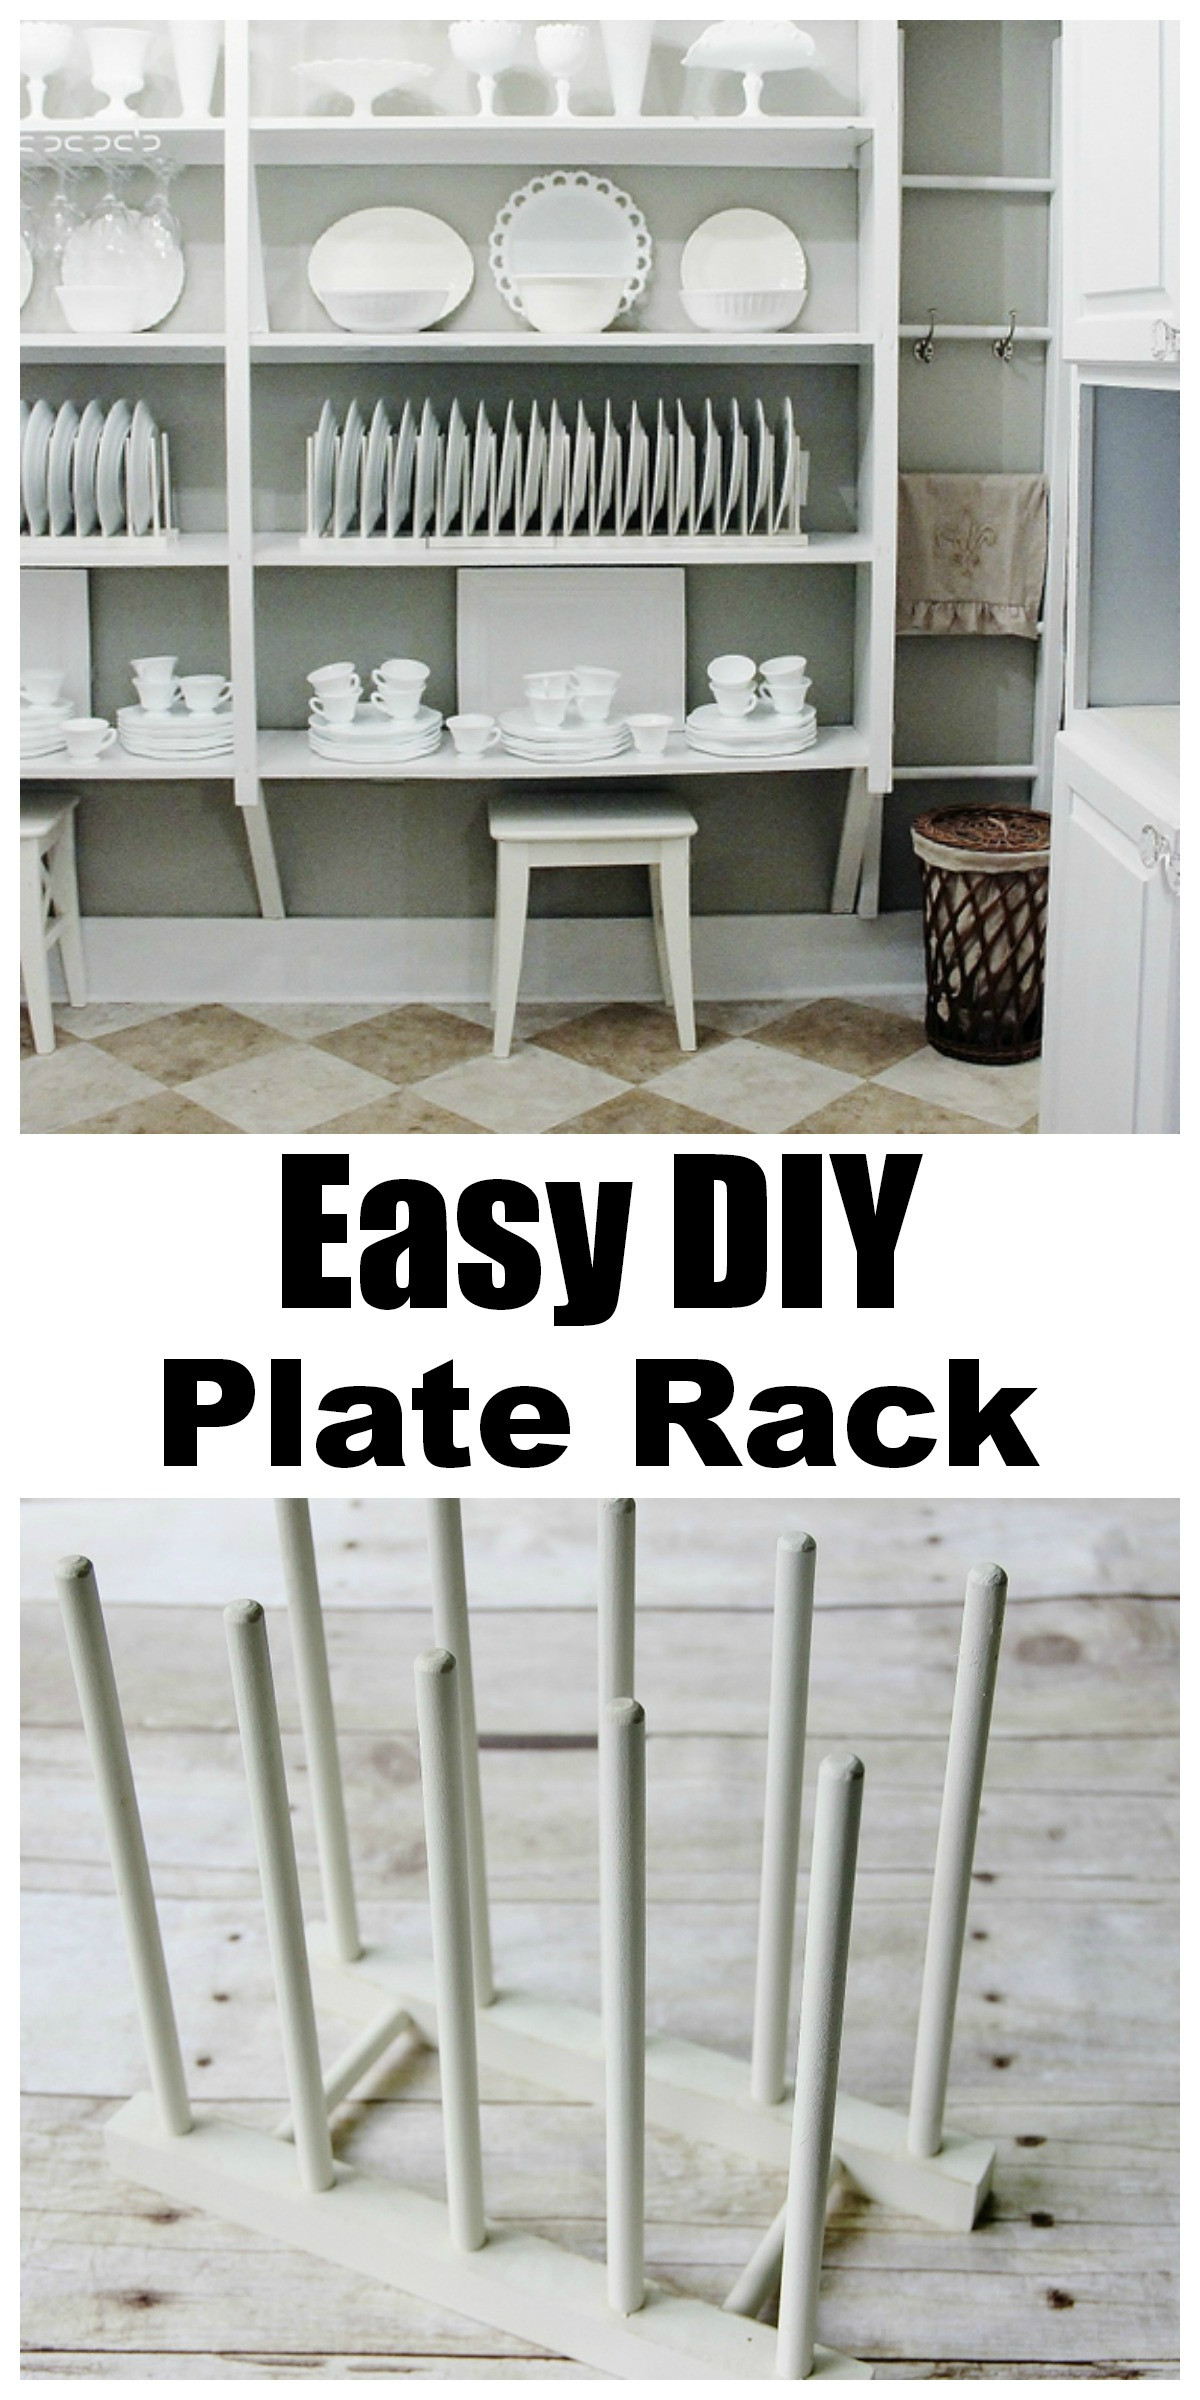 Best ideas about DIY Plate Rack . Save or Pin Simple Plate Display Rack Thistlewood Farm Now.